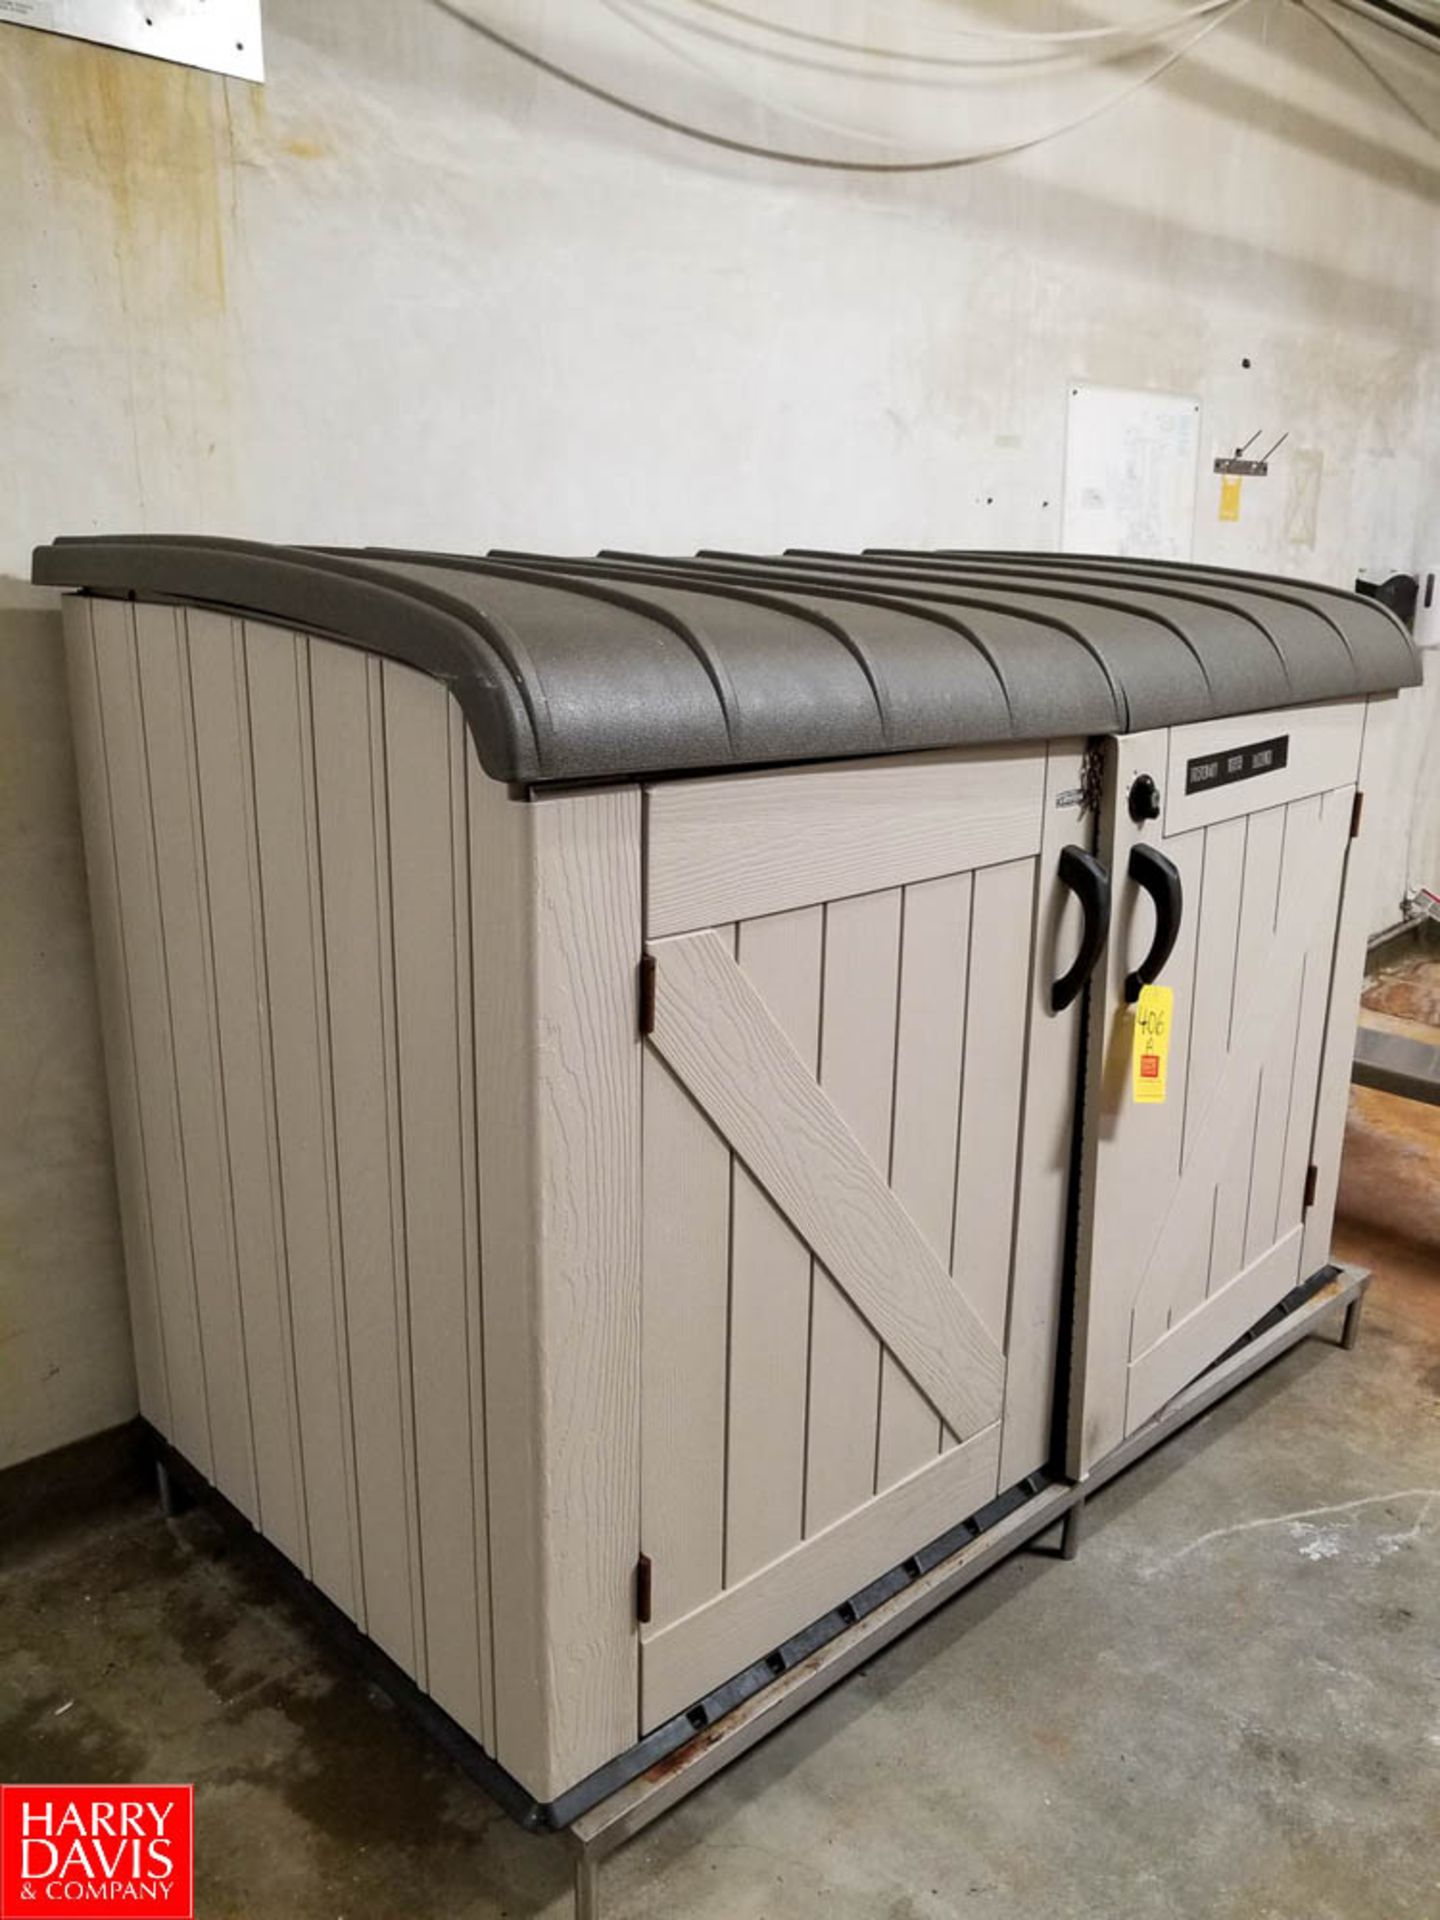 Lot 406A - Lifetime Storage Shed - Rigging Fee: $25